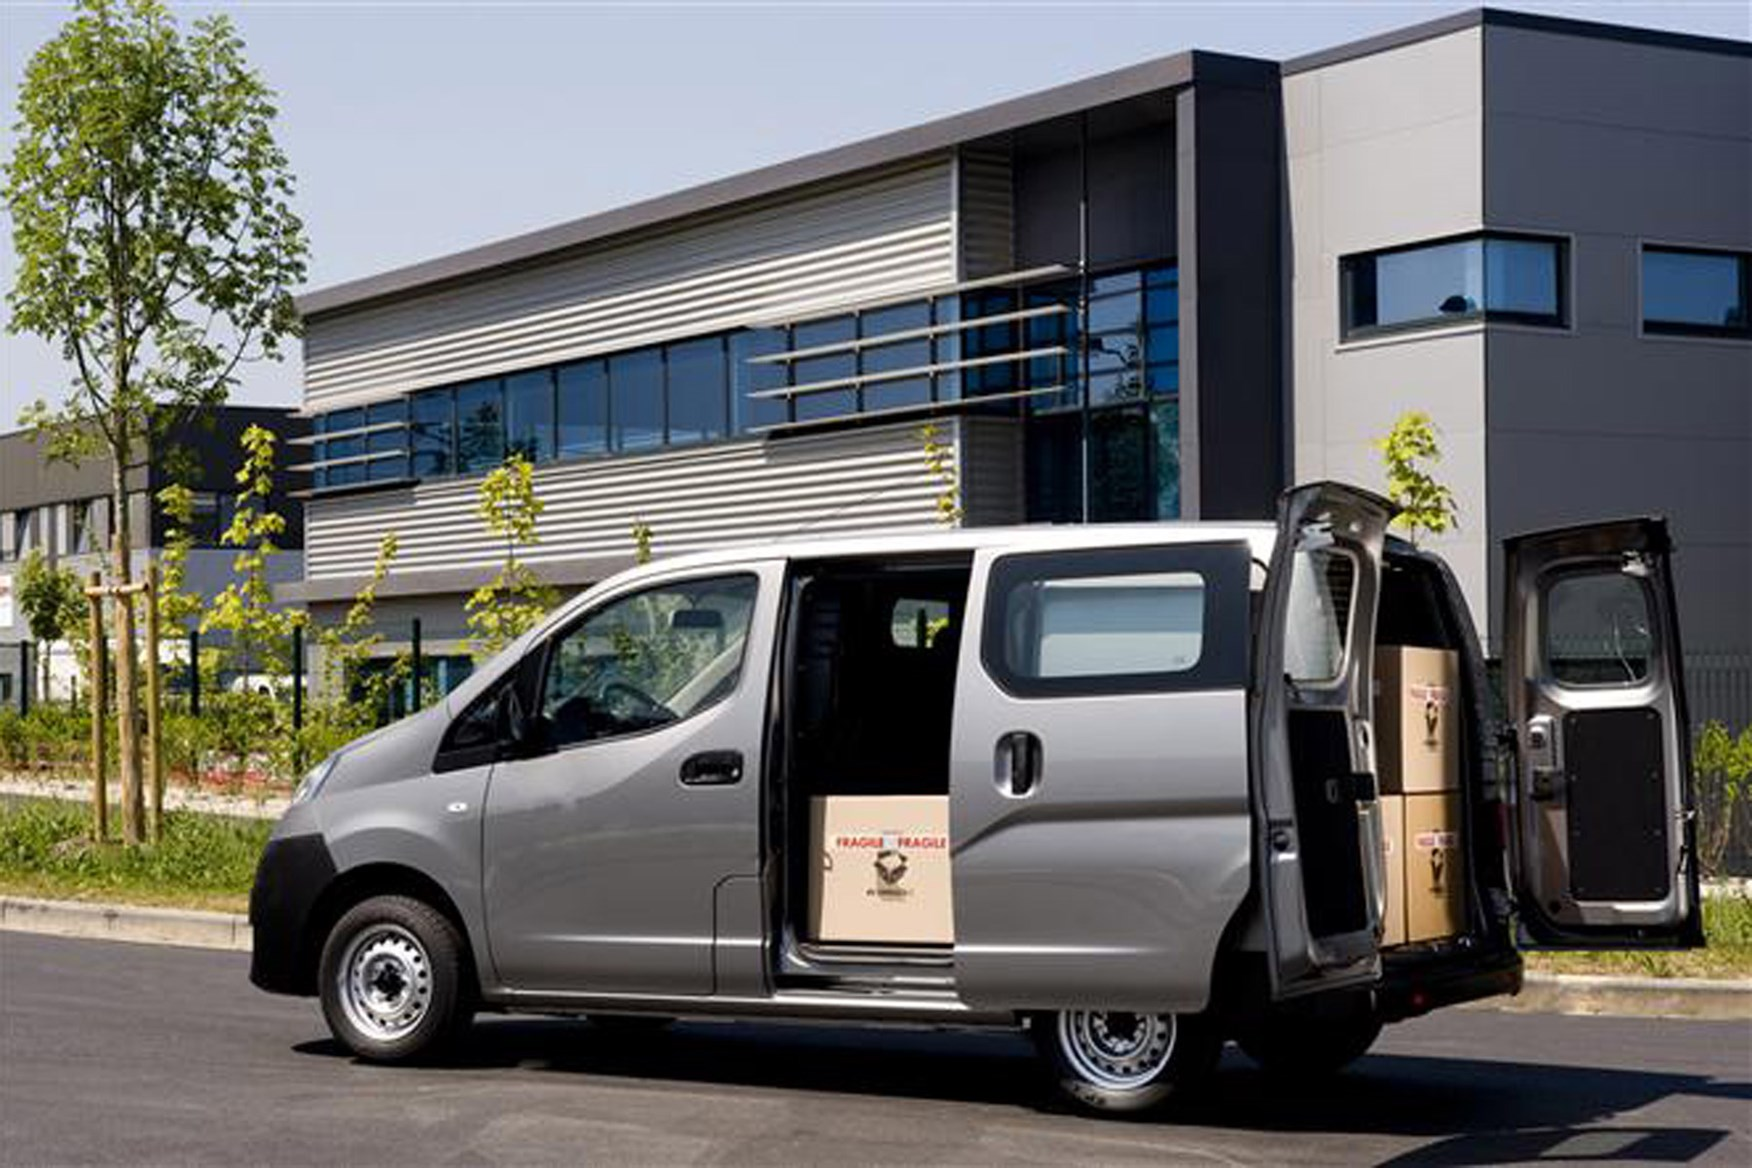 Nissan NV200 full review on Parkers Vans - load area access